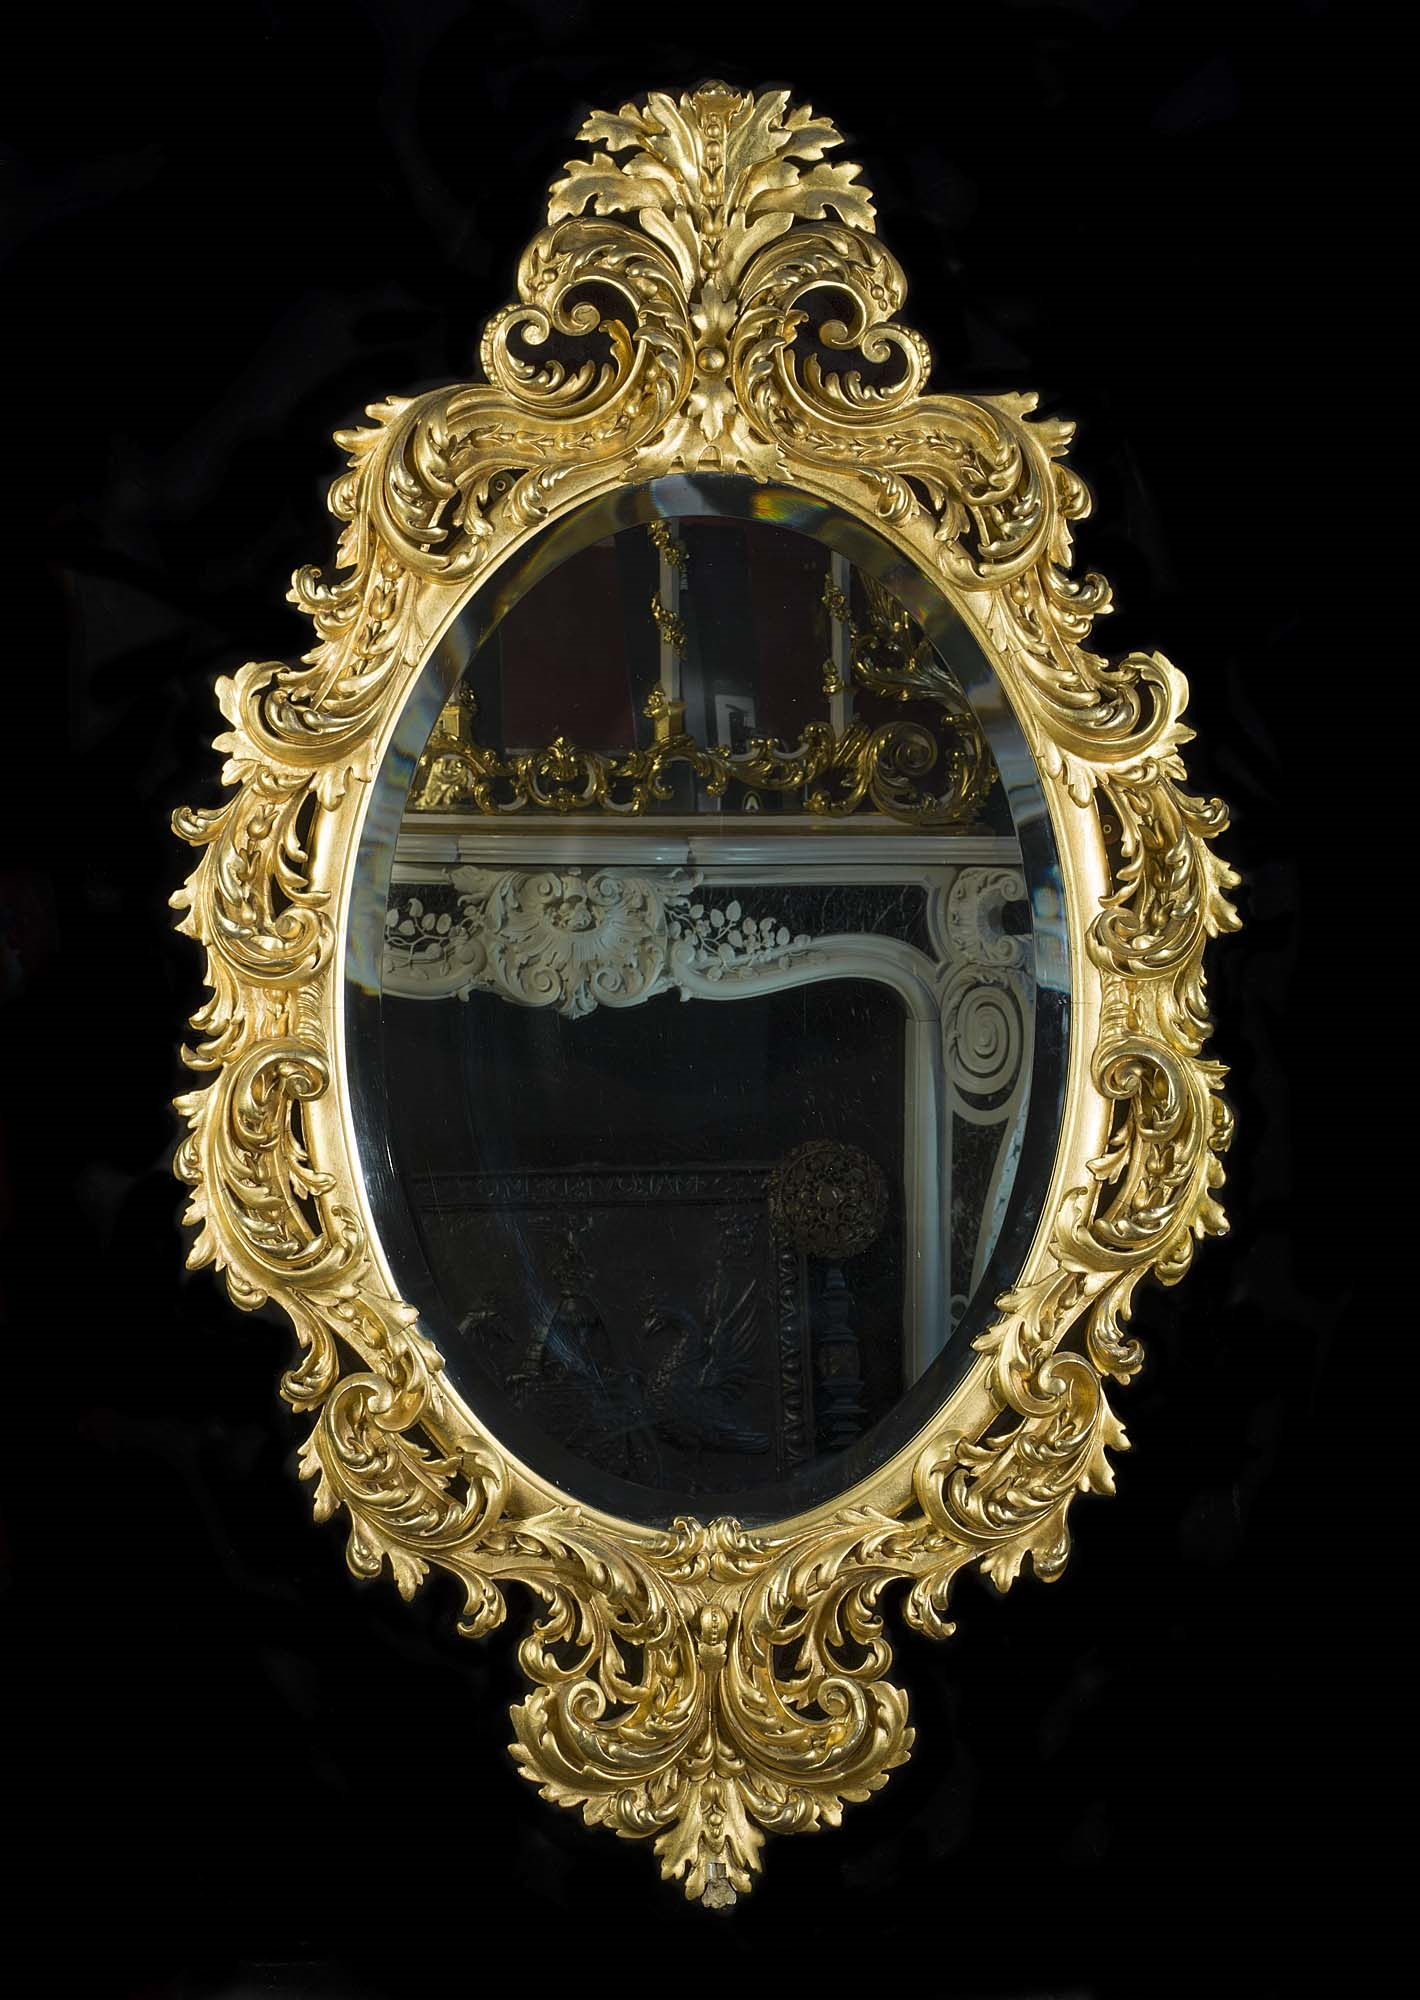 The history of the mirror and different styles of antique mirrors